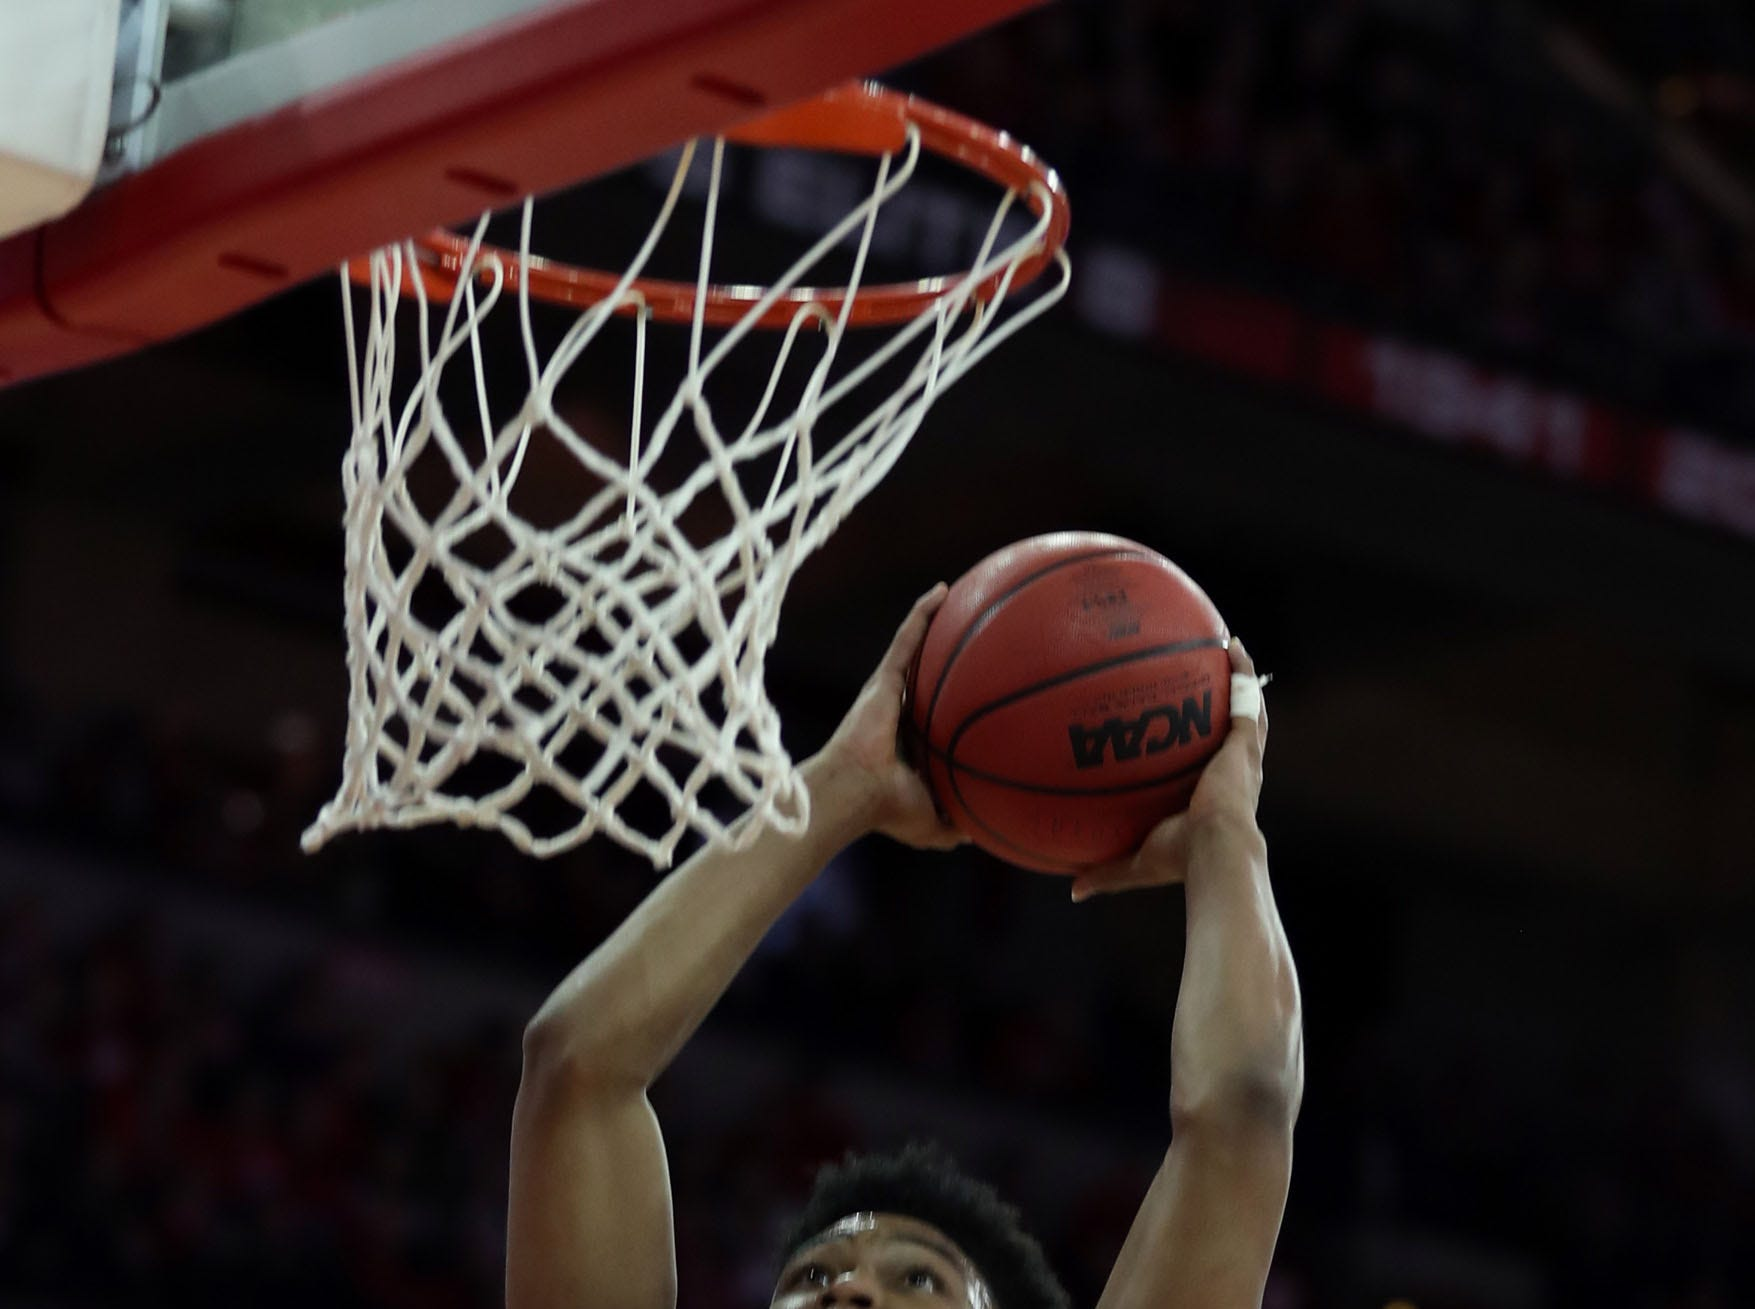 Jan 11, 2019; Madison, WI, USA; Purdue Boilermakers guard Nojel Eastern (20) prepares to dunk the bal during the game with the Wisconsin Badgersl during the first half at the Kohl Center. Mandatory Credit: Mary Langenfeld-USA TODAY Sports